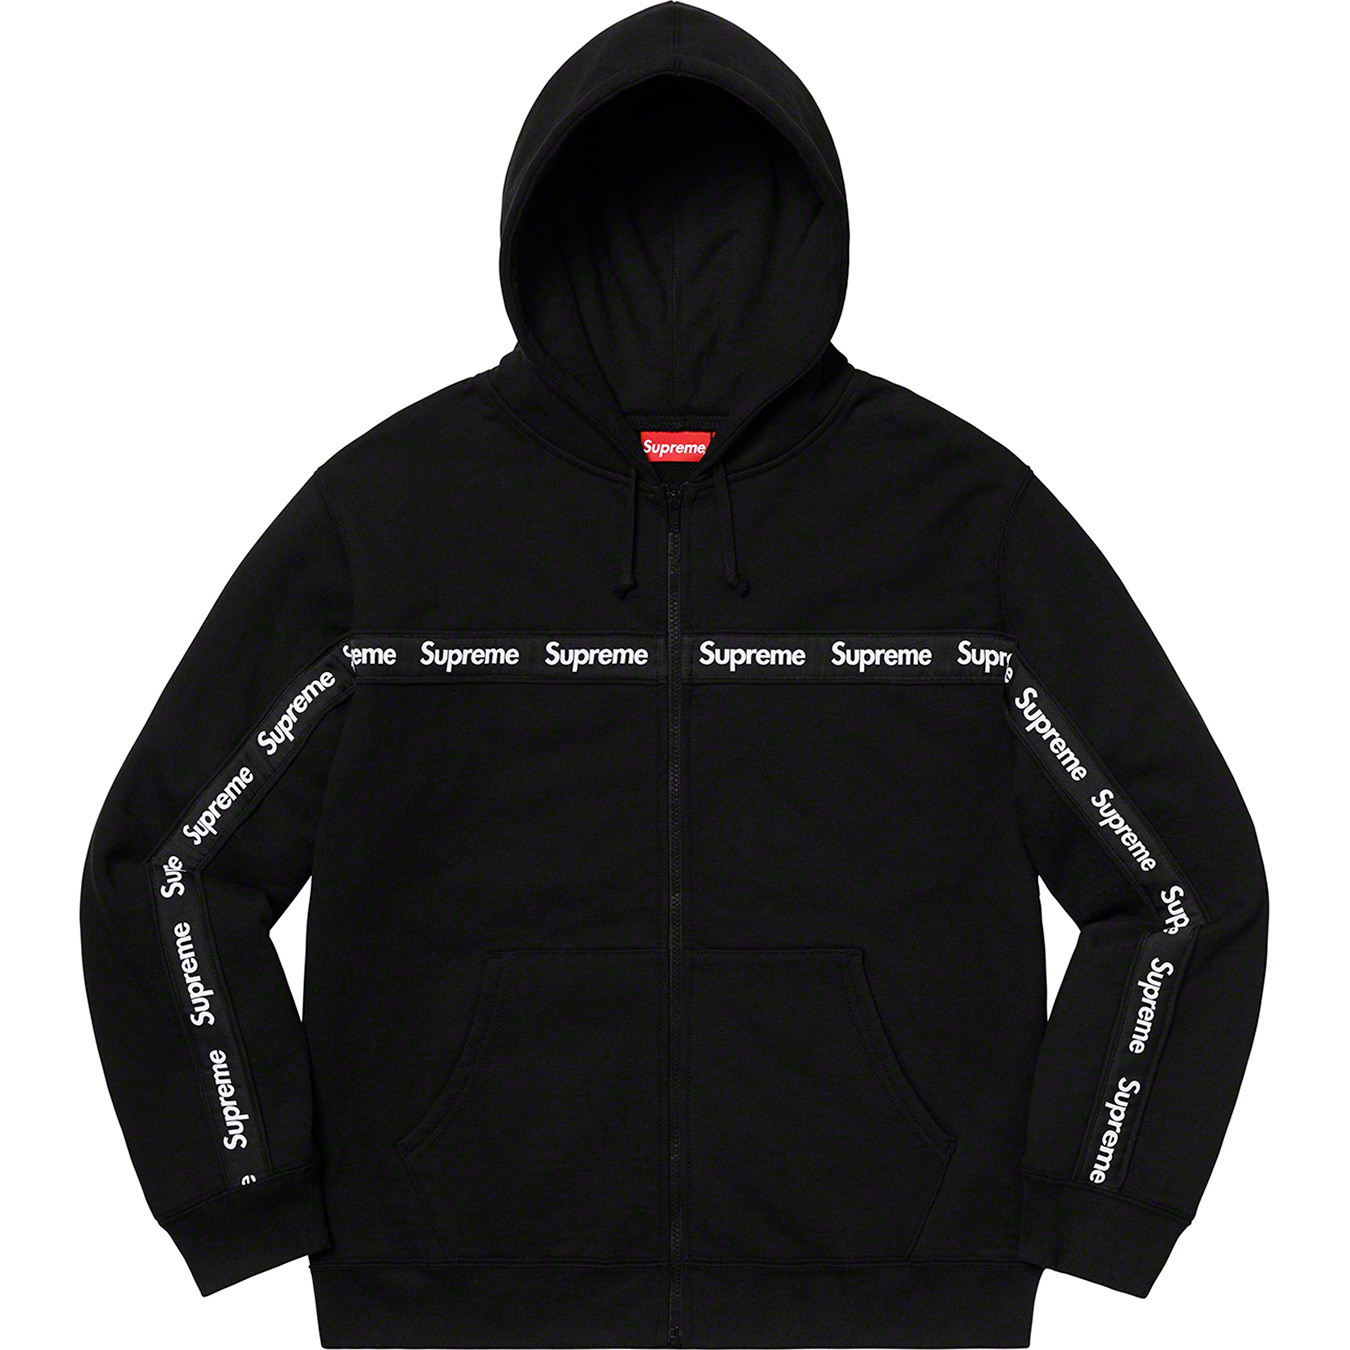 supreme-19aw-19fw-fall-winter-text-stripe-zip-up-hooded-sweatshirt